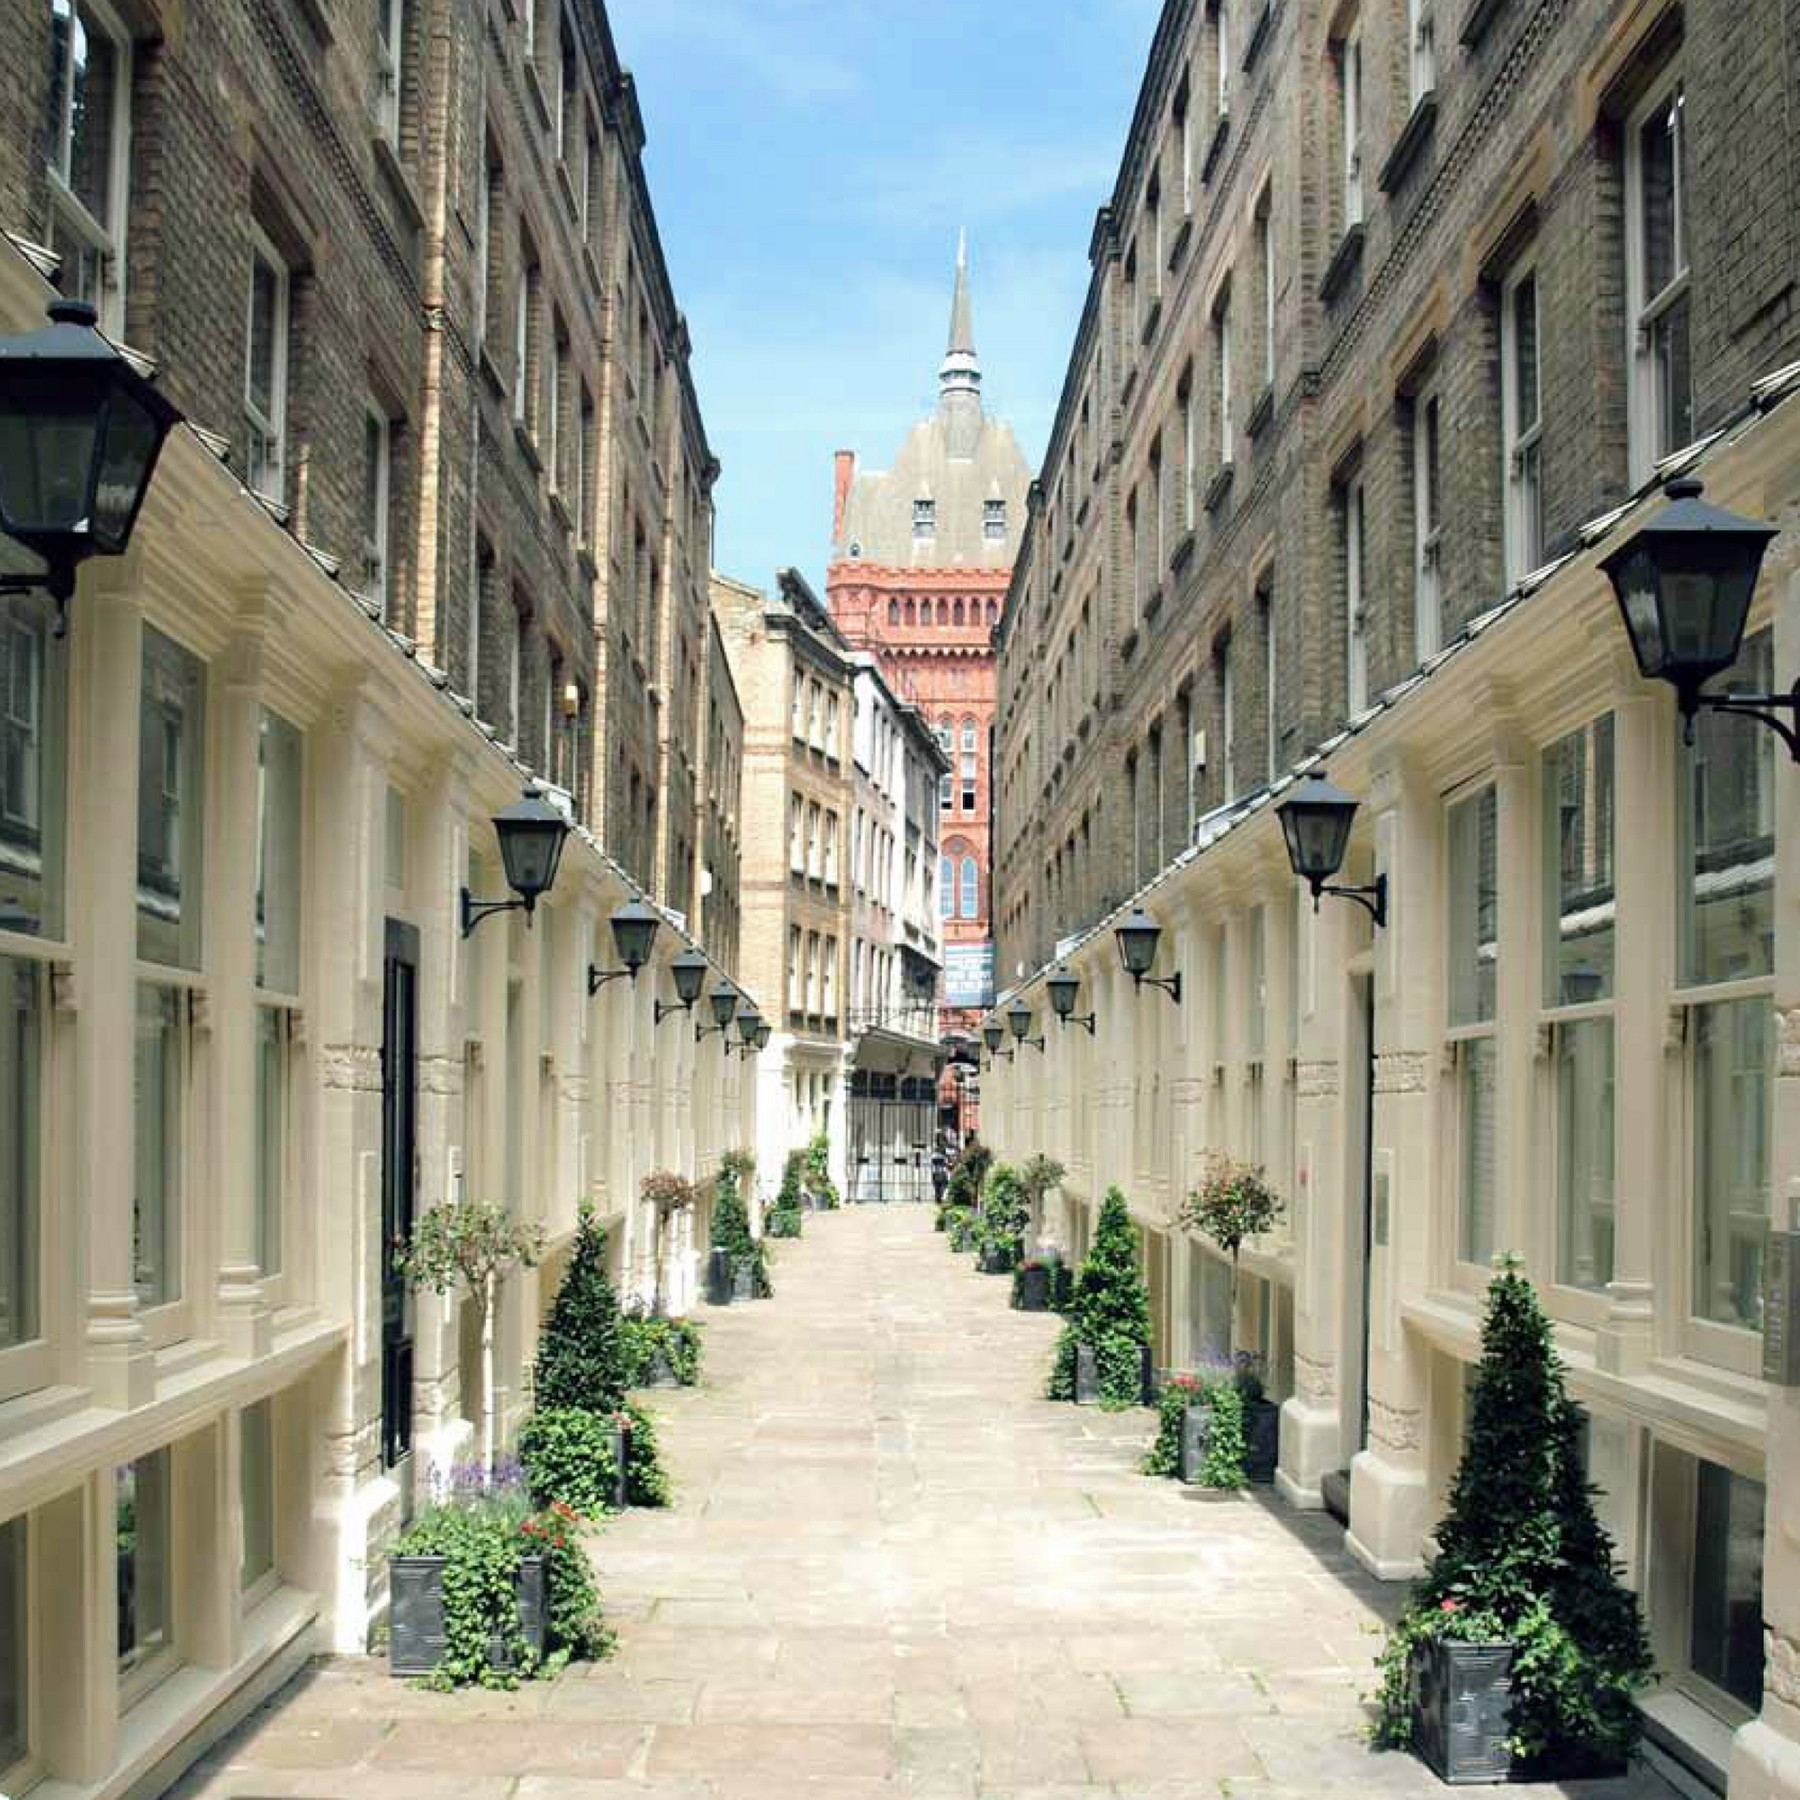 Dyers-Buildings-Private-Gated-Victorian-luxury-apartment-scheme-Residential-Development-Holborn-London-Jamie-Fobert-Architects-view